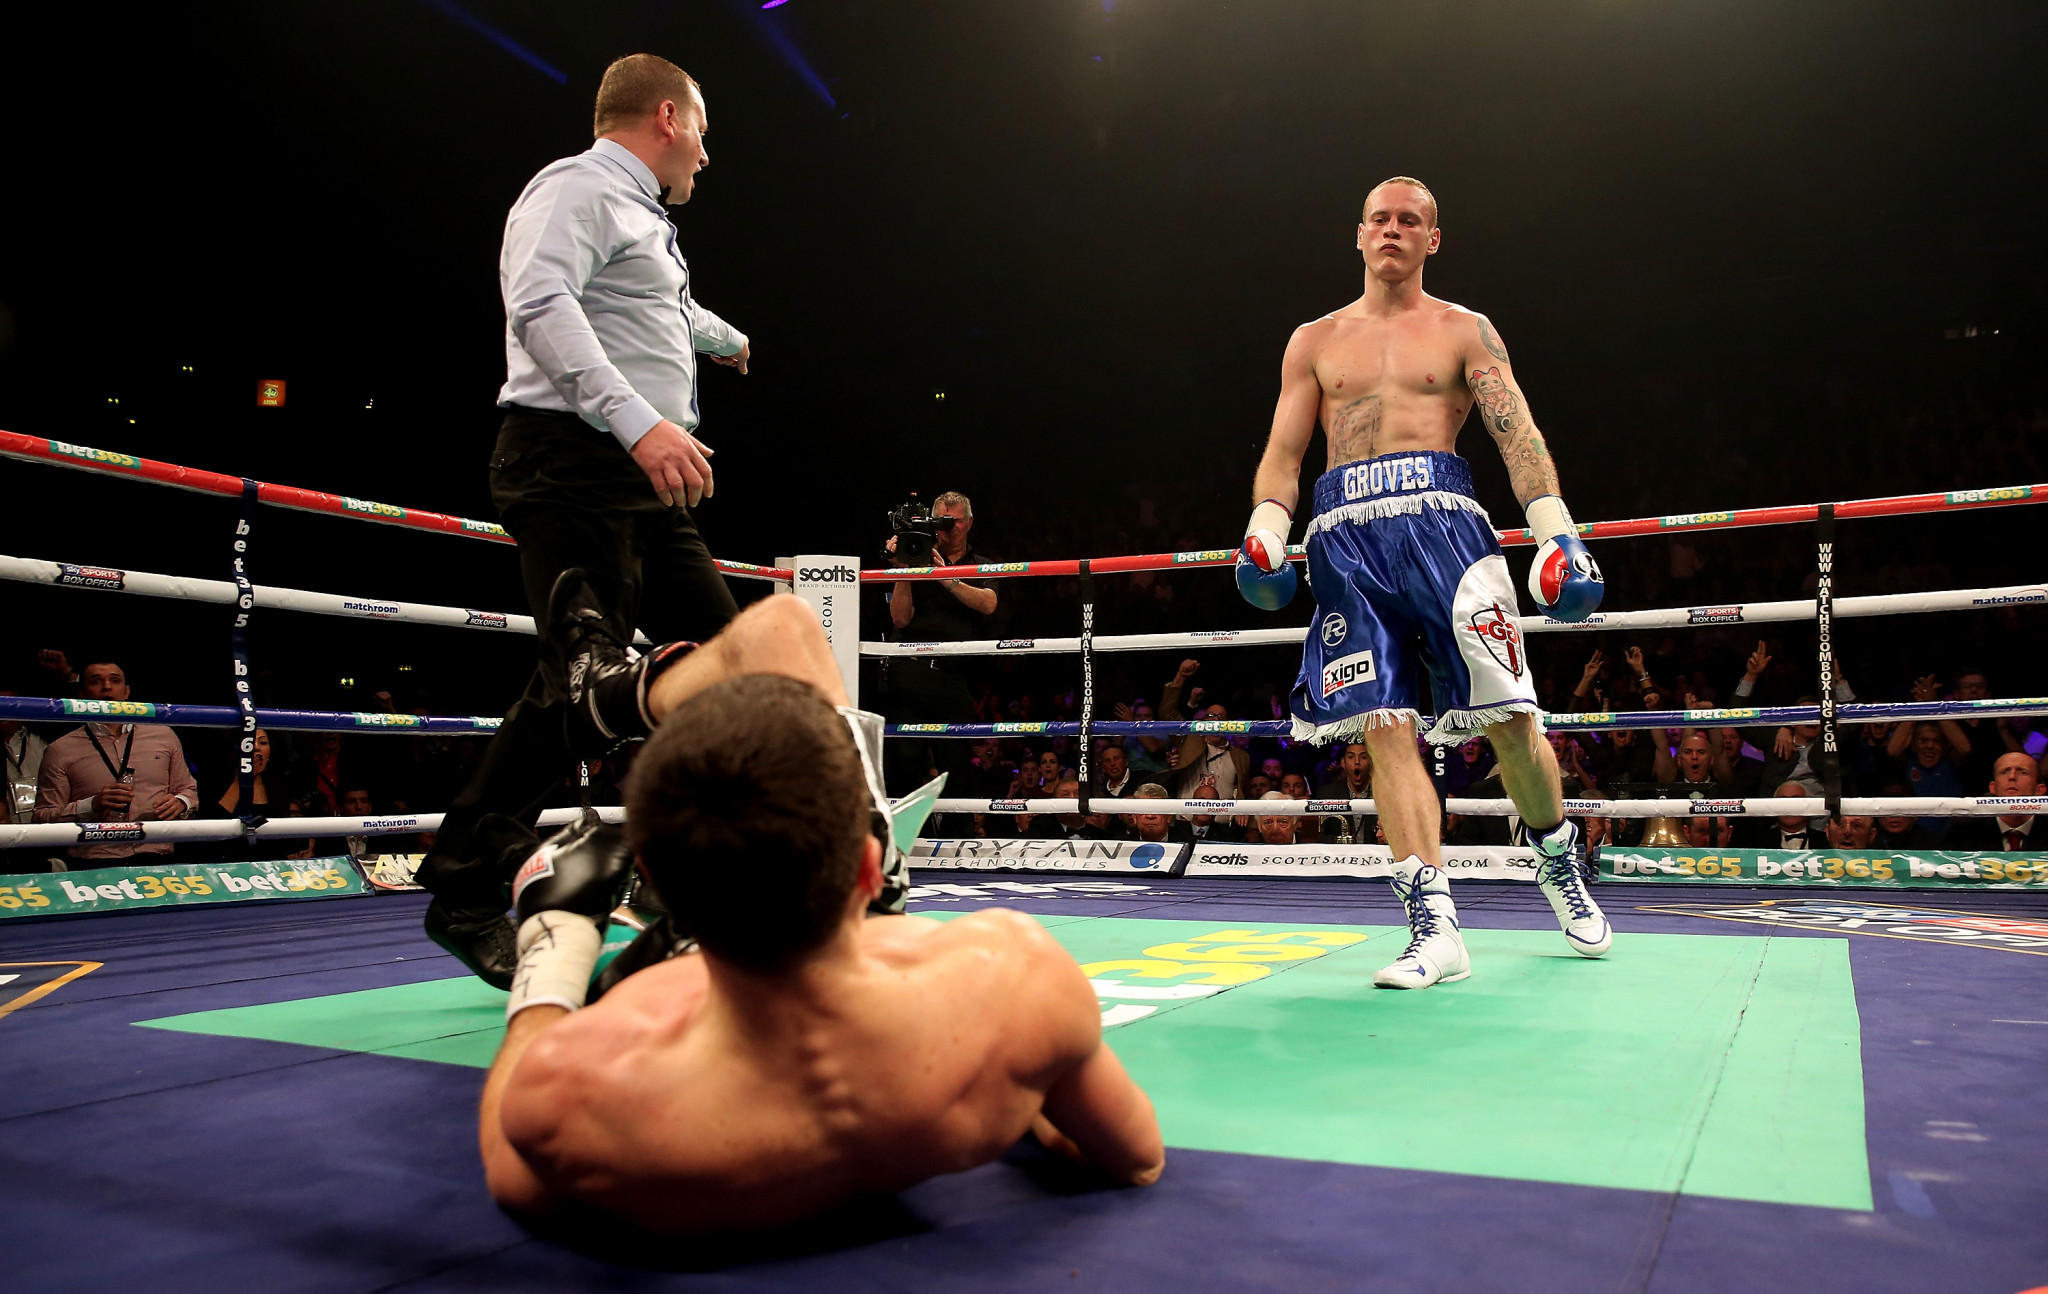 Carl Froch recovered from an early knockdown to beat George Groves in 2013 ©Getty Images